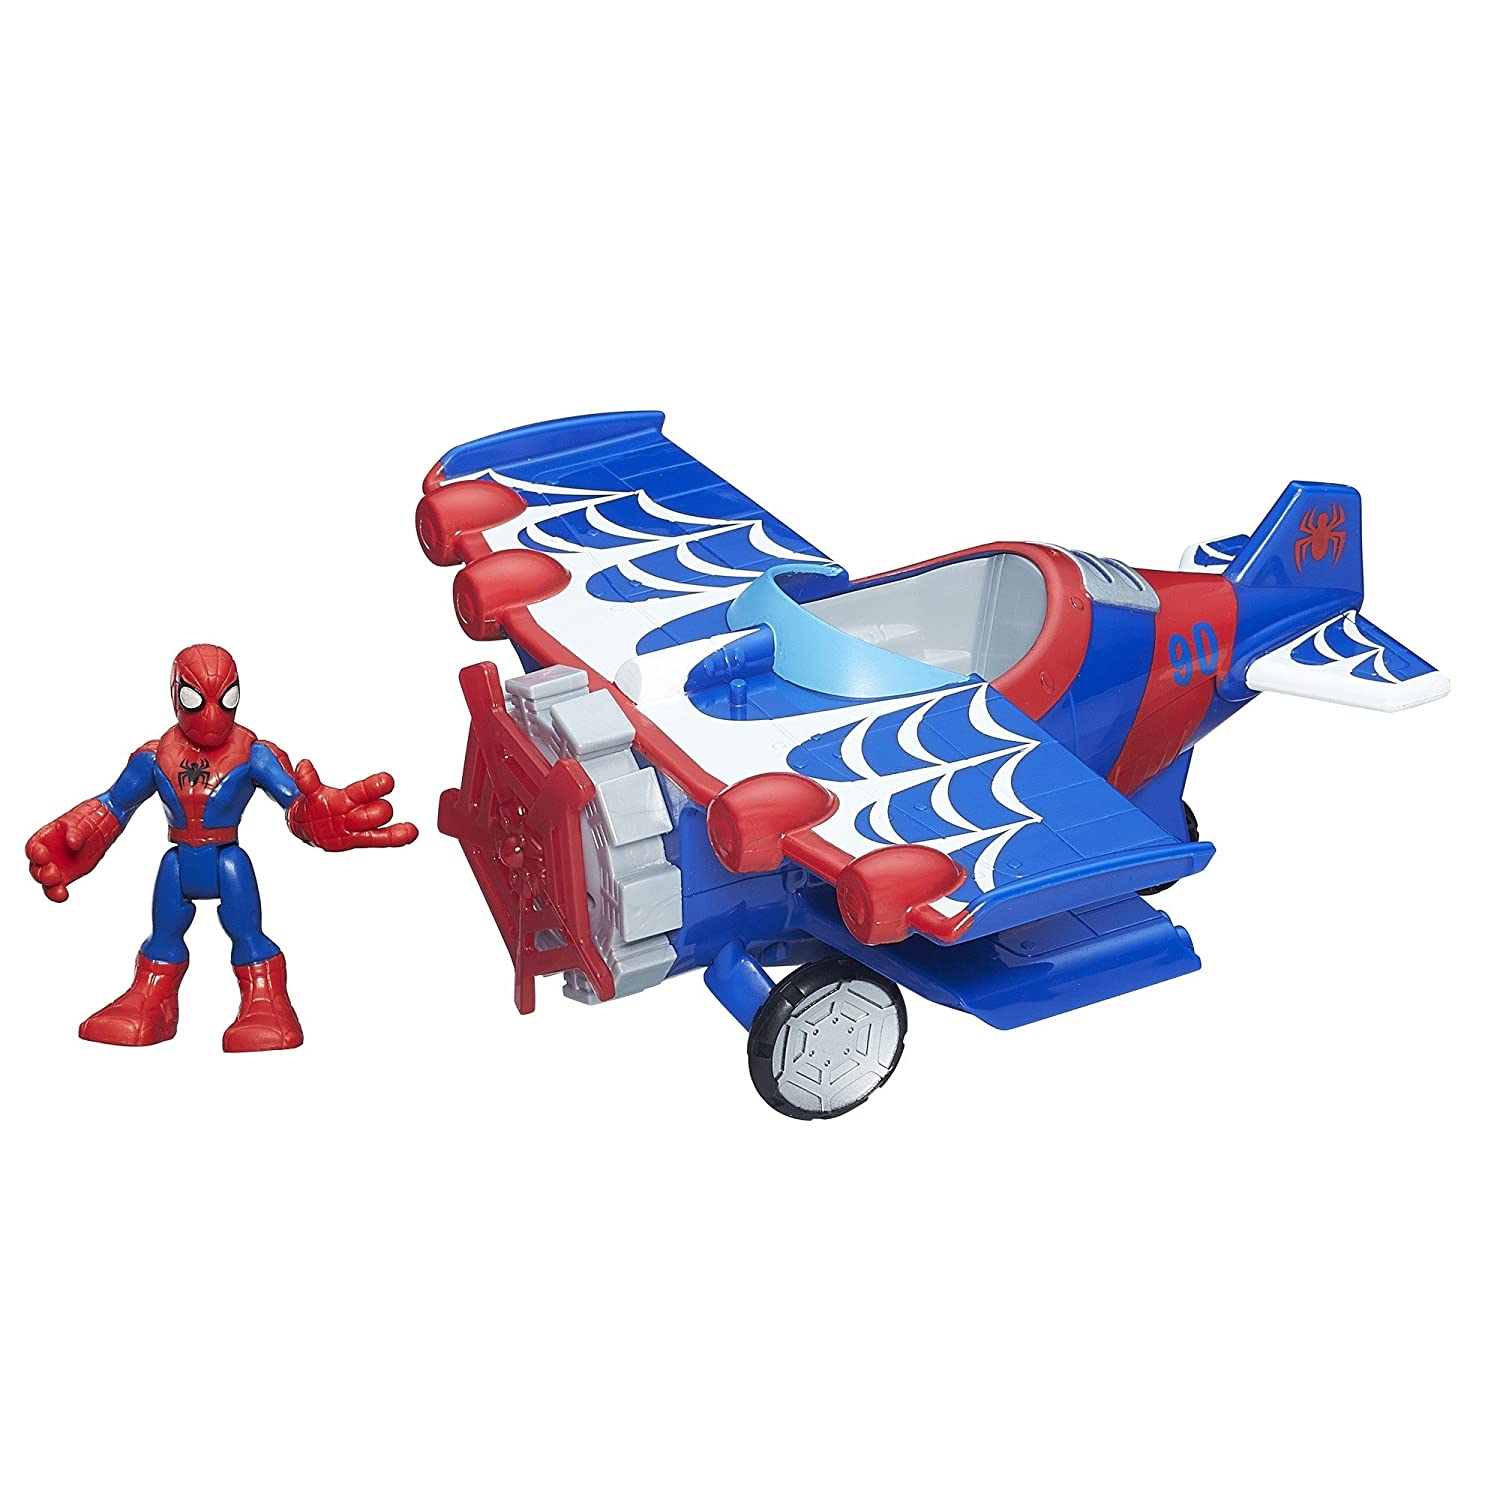 Playskool Heroes Marvel Super Hero Adventures Stunt Wing Spider Plane Spiderman Toy   B00P926ZX0